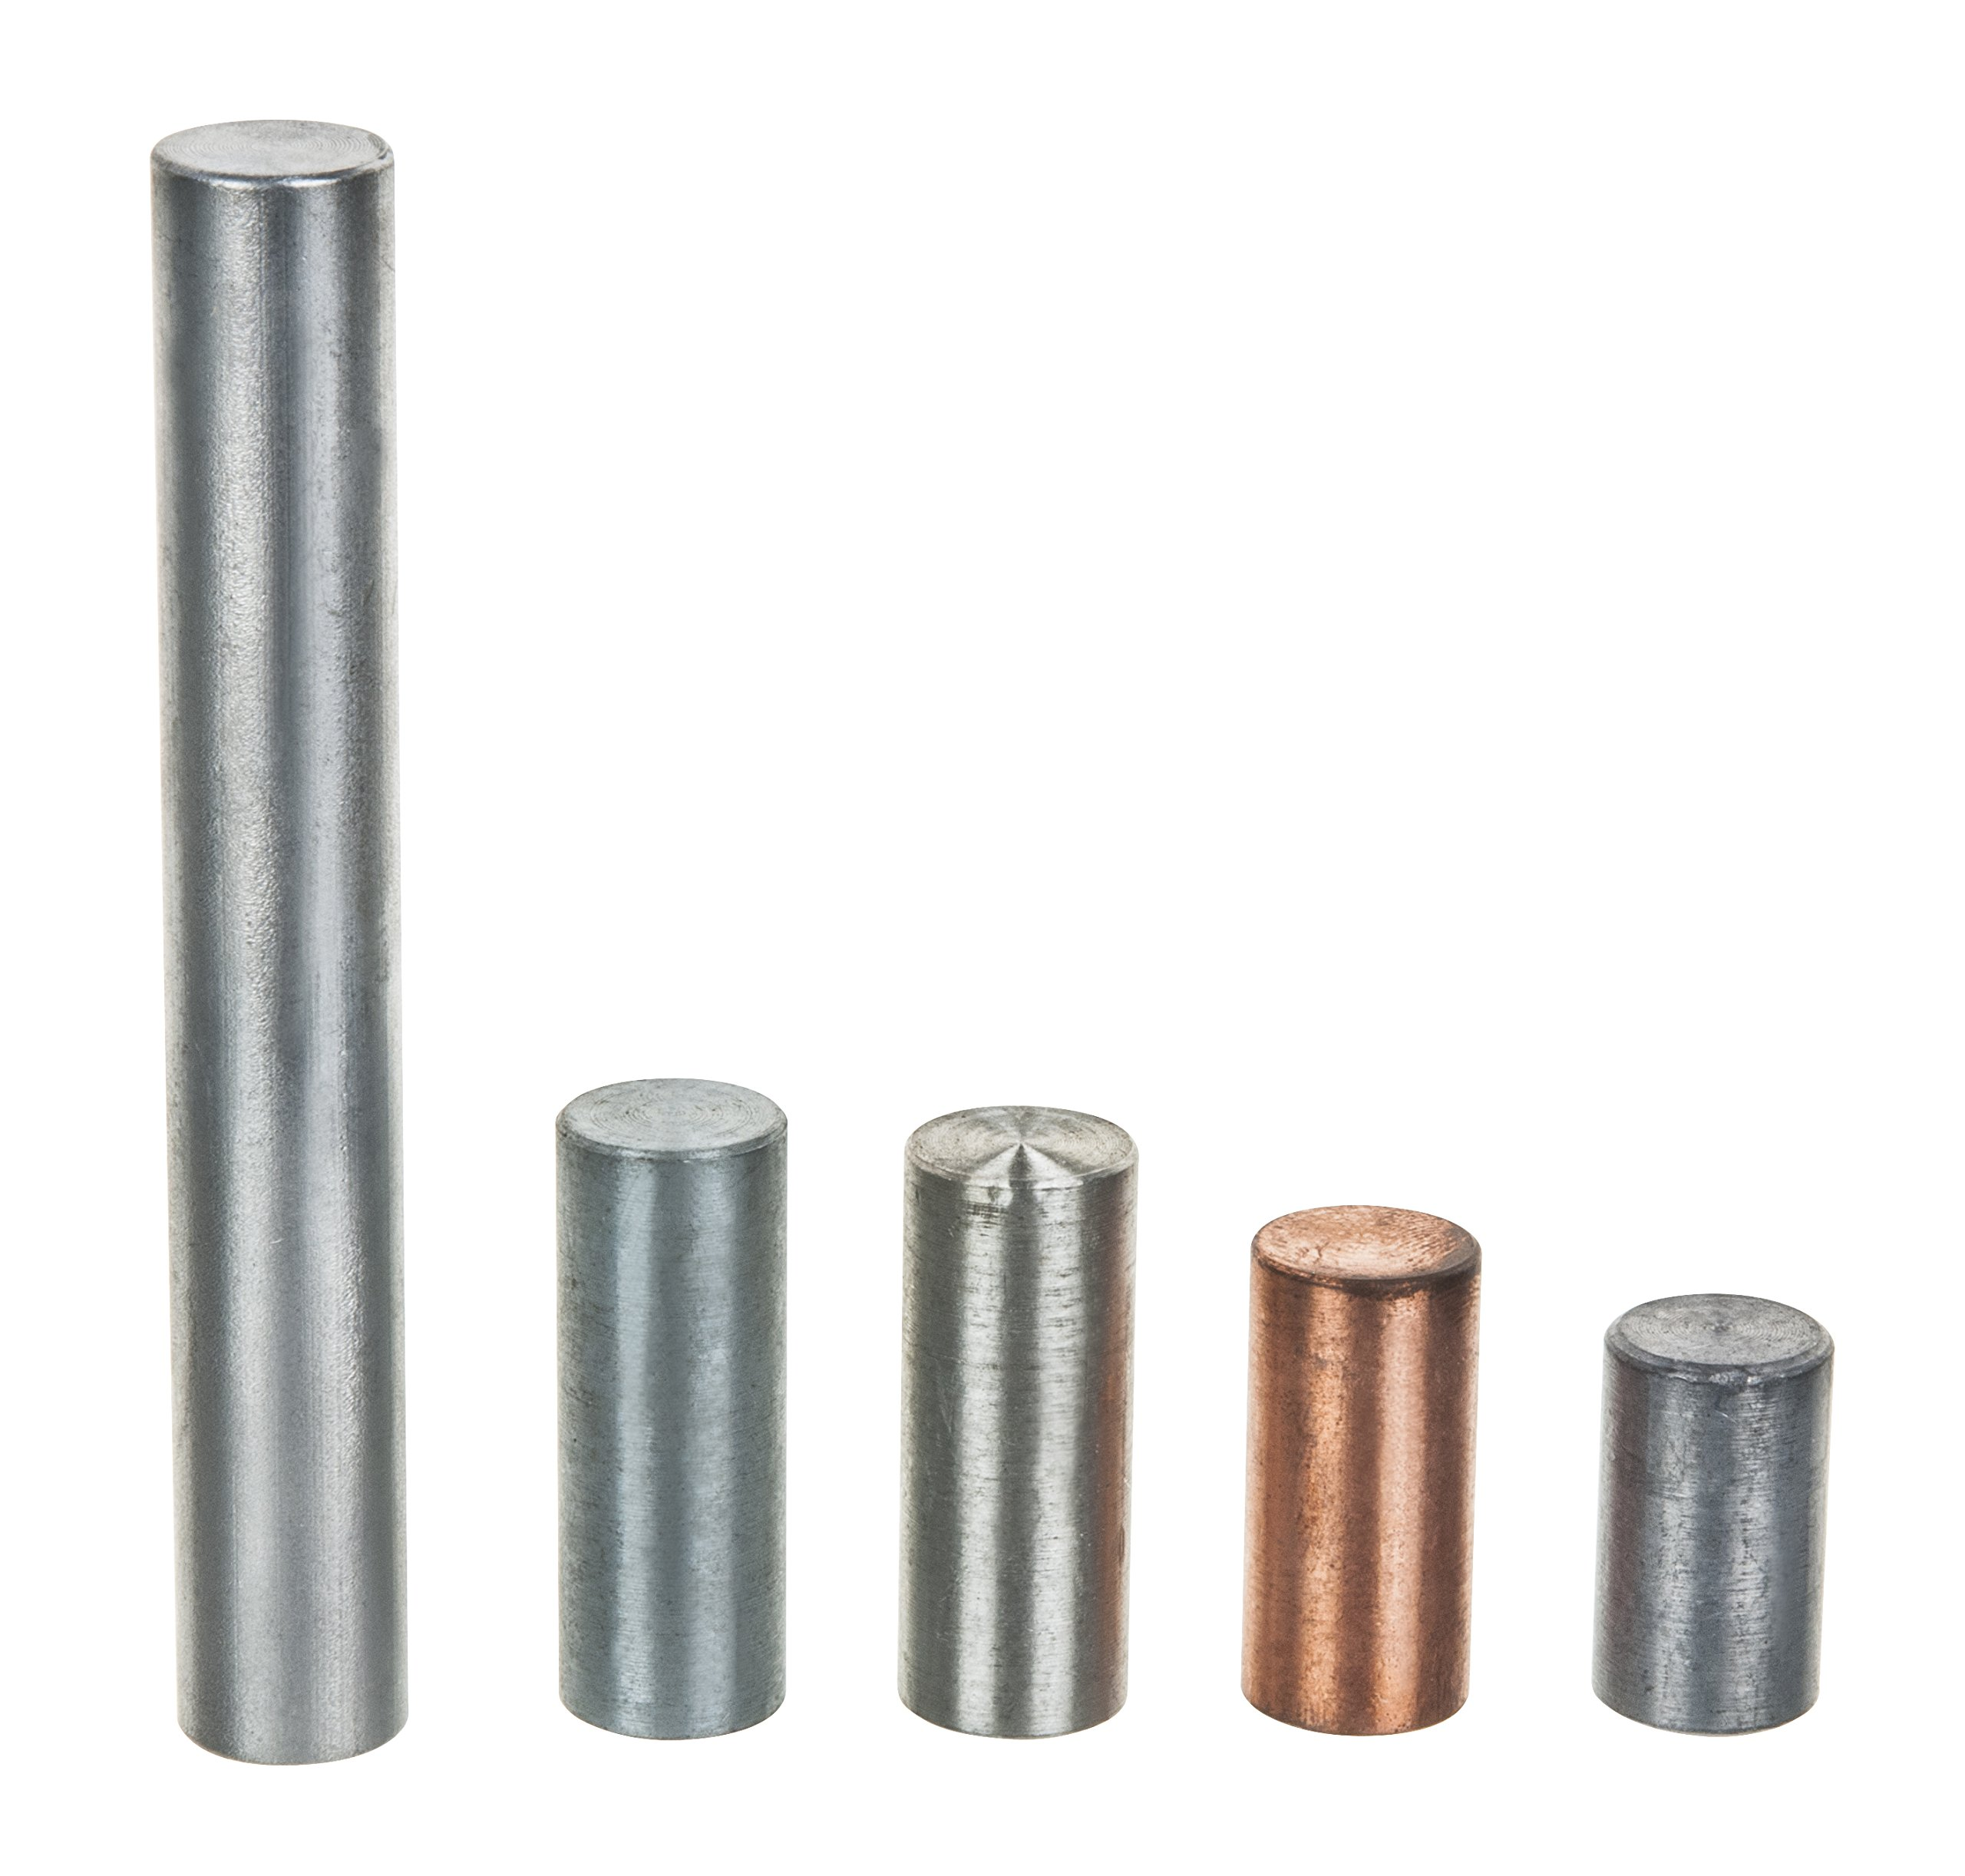 Equal Mass (30g) Cylinders, Set of 5 Metals, Varied Lengths and 0.5'' Diameter Aluminum, Copper, Tin, Zinc, Lead - For use with Density, Specific Gravity, Specific Heat Activities - Eisco Labs